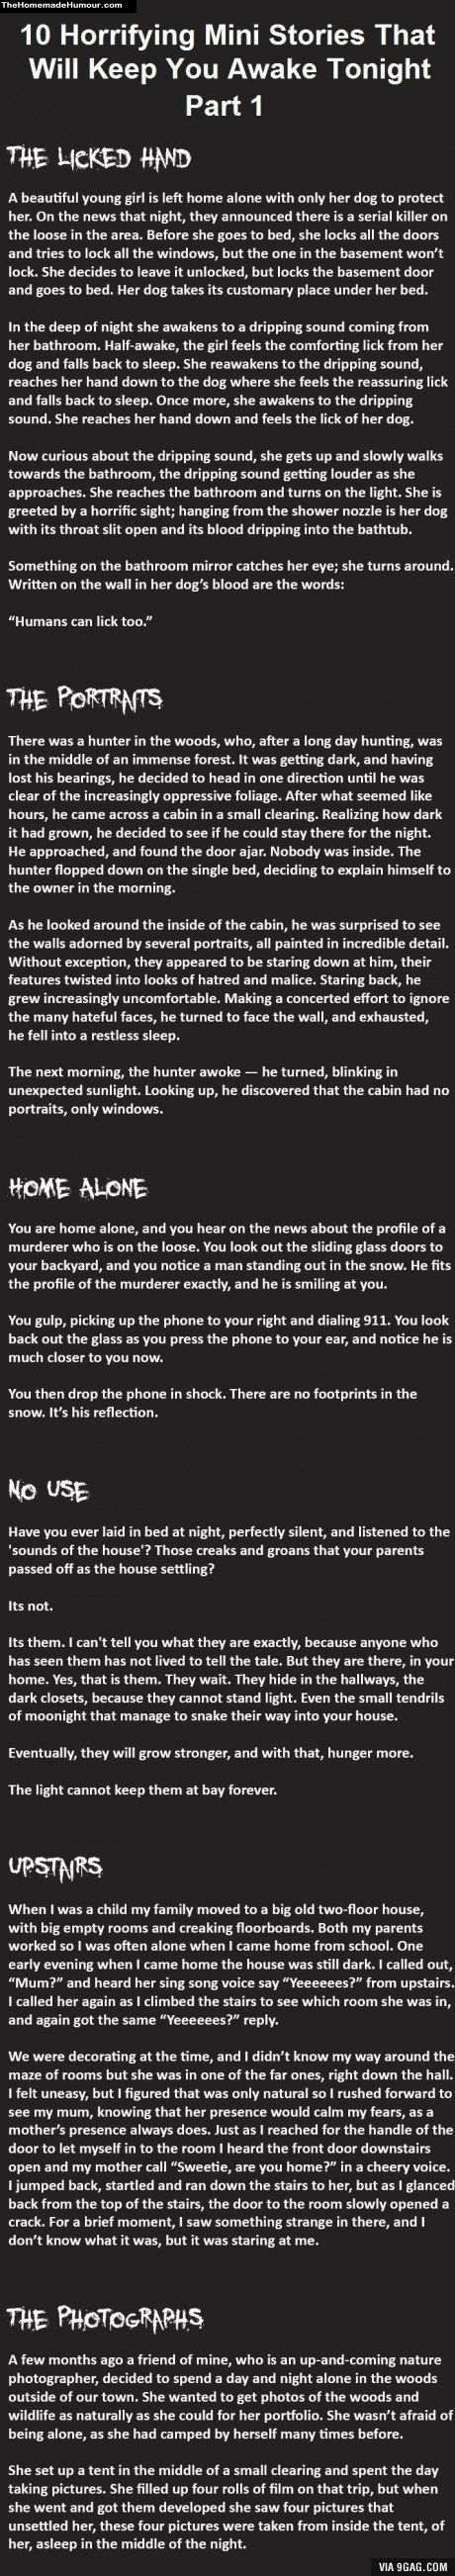 Horror Stories That Gonna Make You Poop In Your Pants! - The Homemade Humour